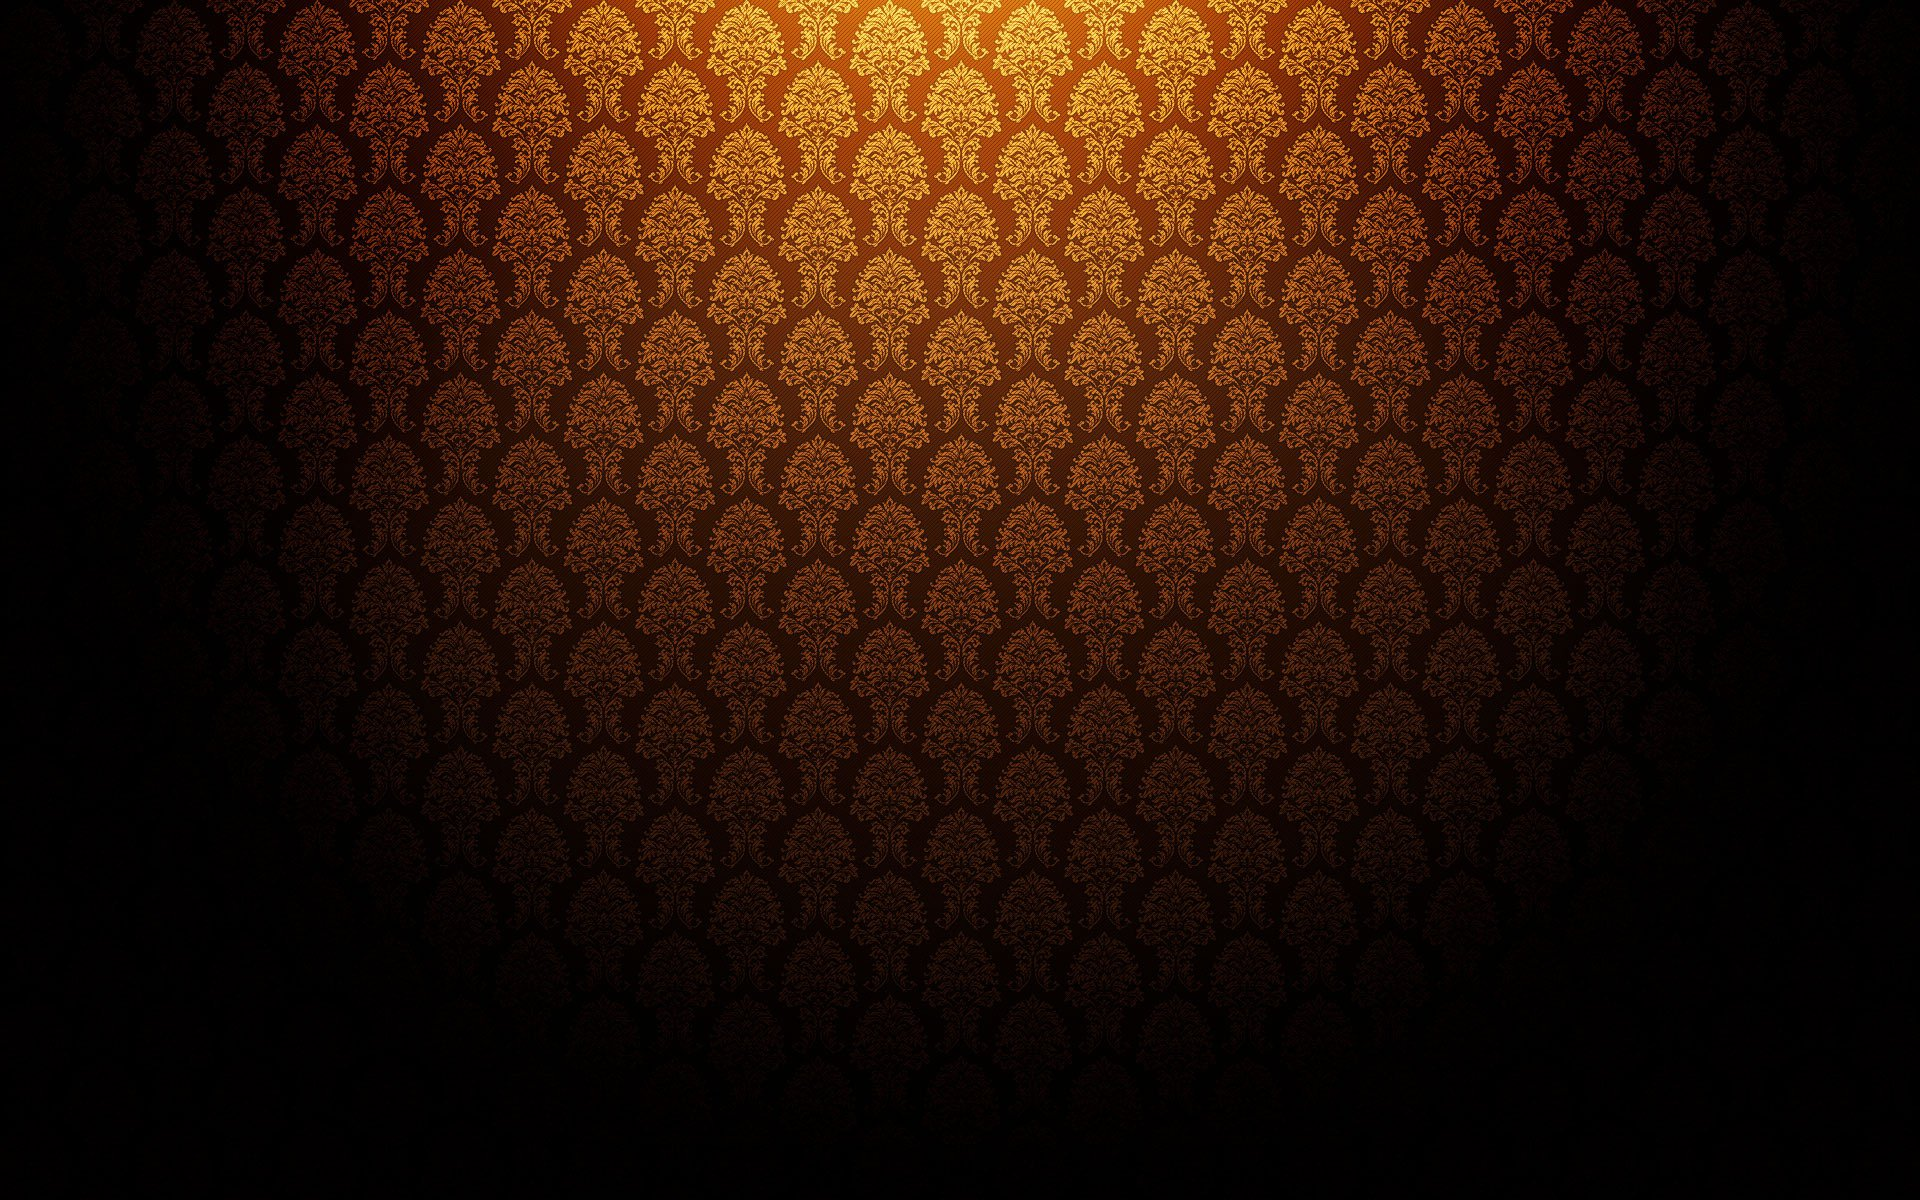 wallpapers elegantes fondos de pantalla